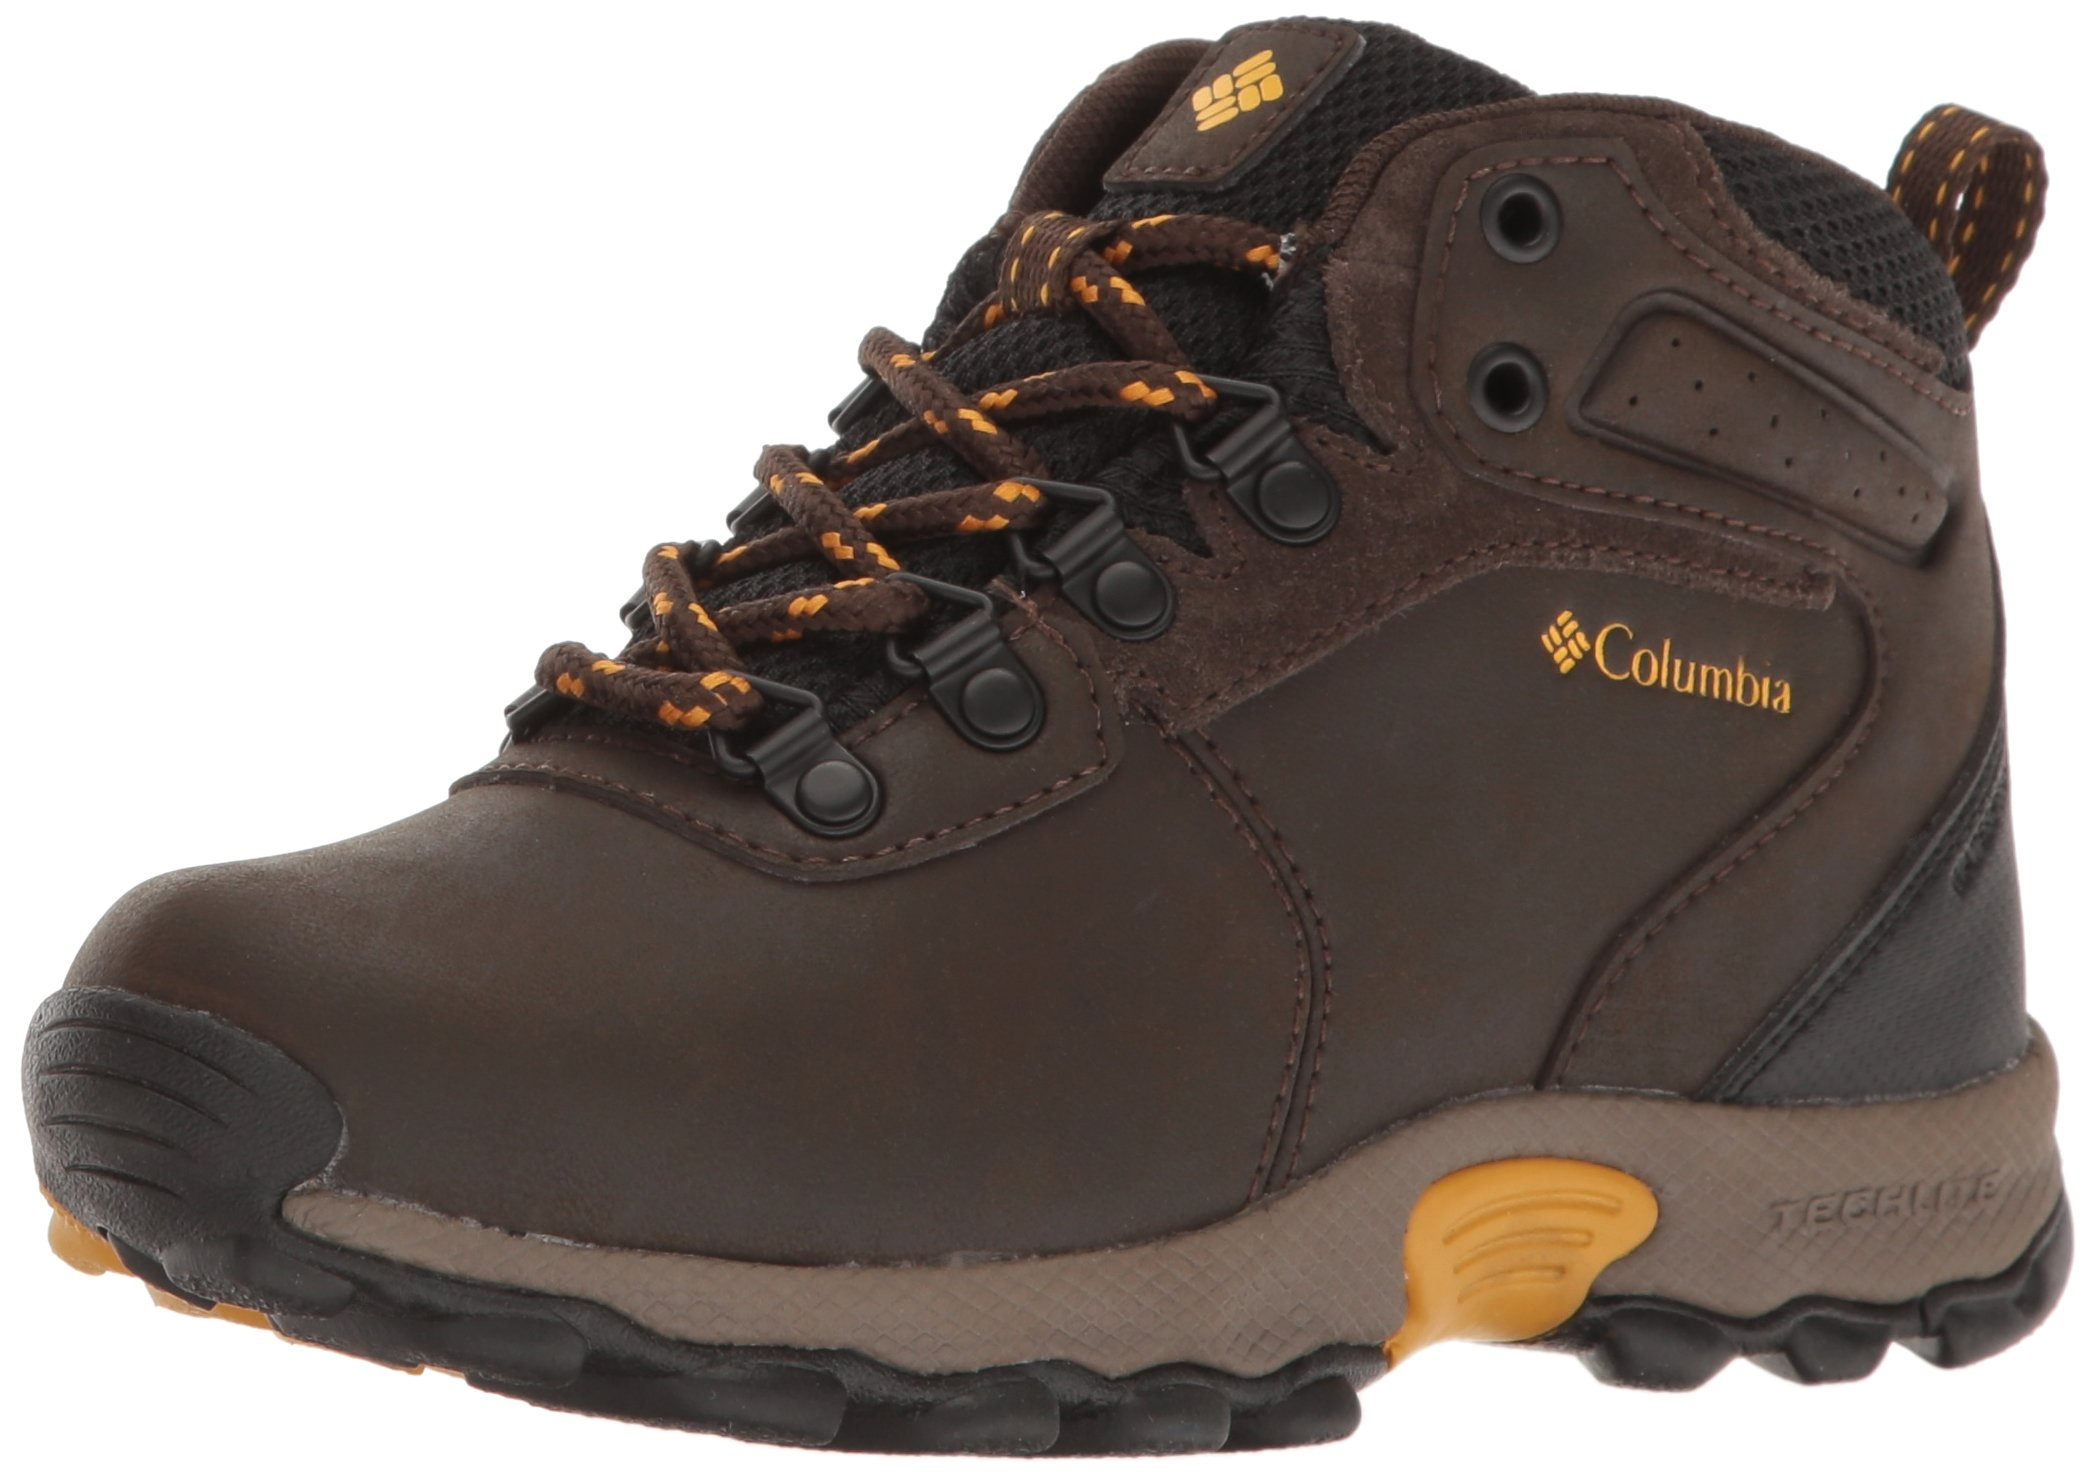 Columbia Unisex Youth Newton Ridge Hiking Shoe Cordovan, Golden Yellow 1 Regular US Little Kid